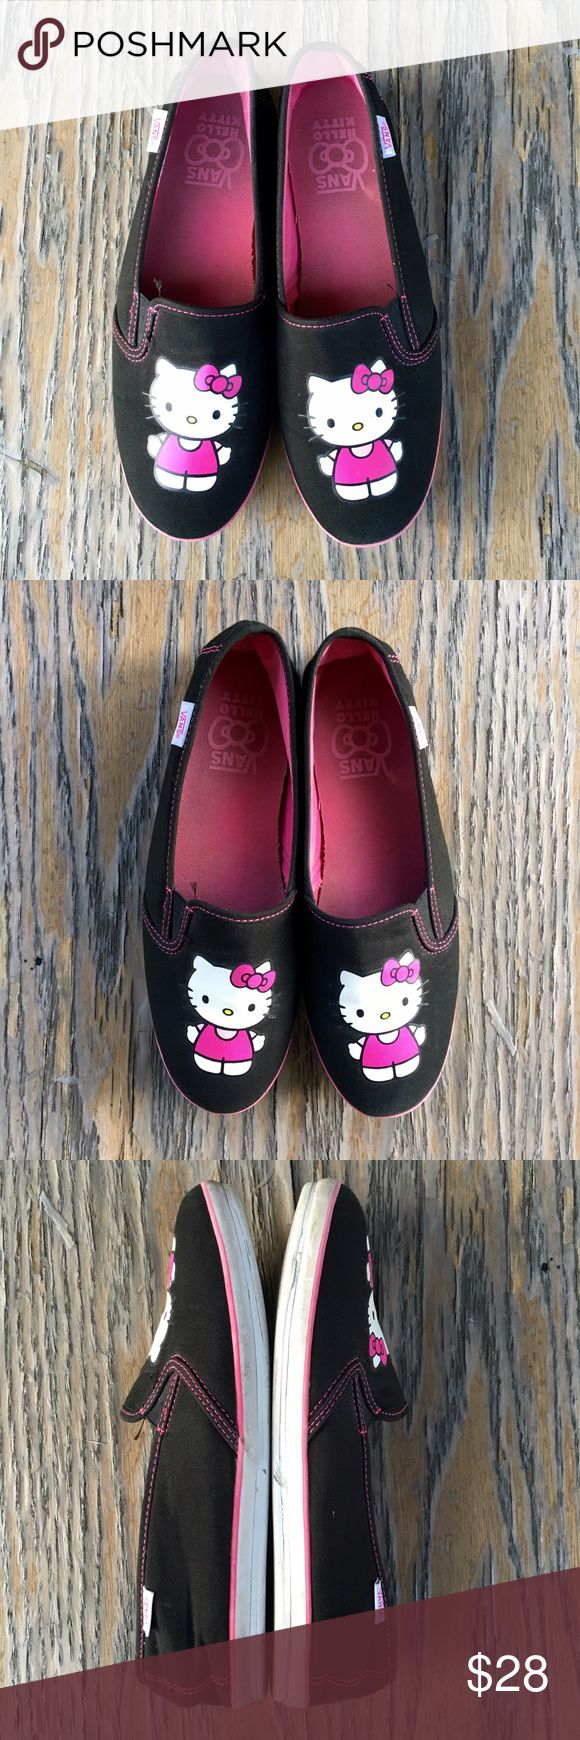 Hello kitty vans slip on shoes Hello kitty vans slip on shoes. All flaws are in pics. Backing is bent out of shape. Overall in good shape. See pics for all details. Ask questions pls. Offers? Vans Shoes